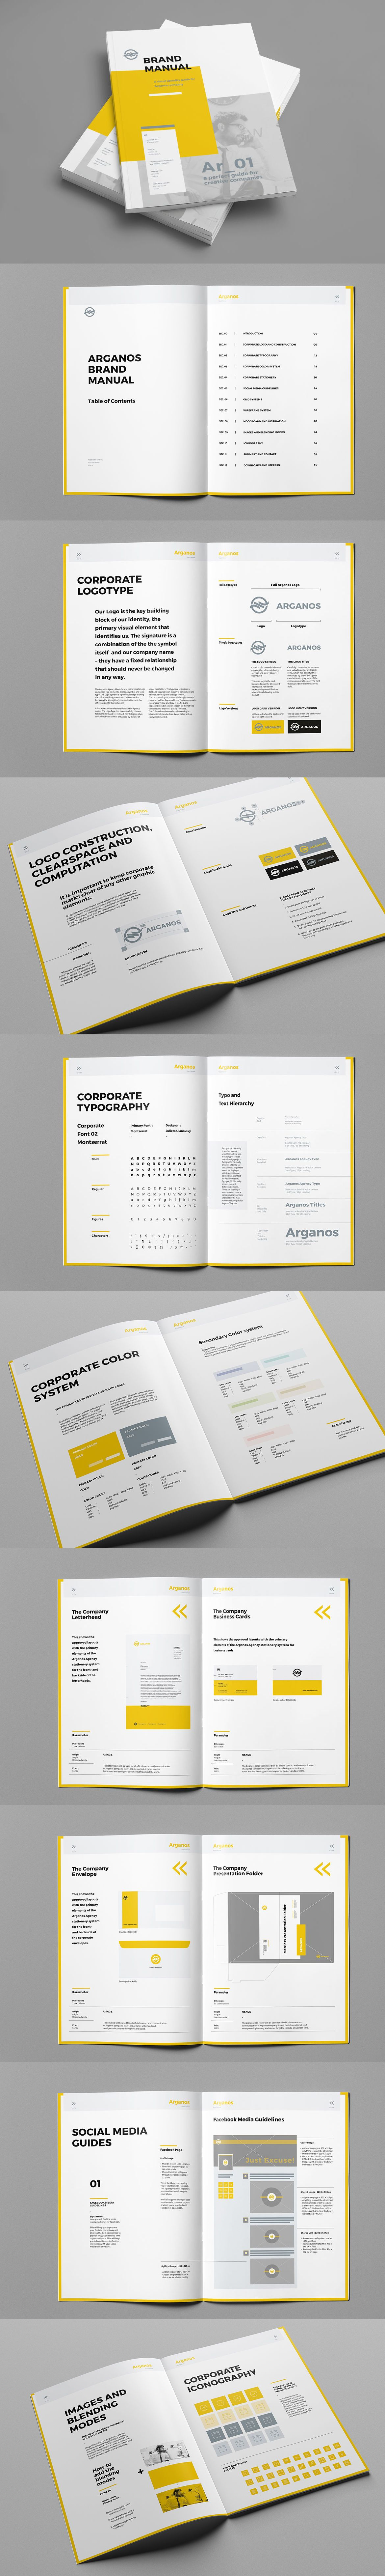 Brand Manual Template InDesign INDD - 48 Pages, A4 | GSM ...